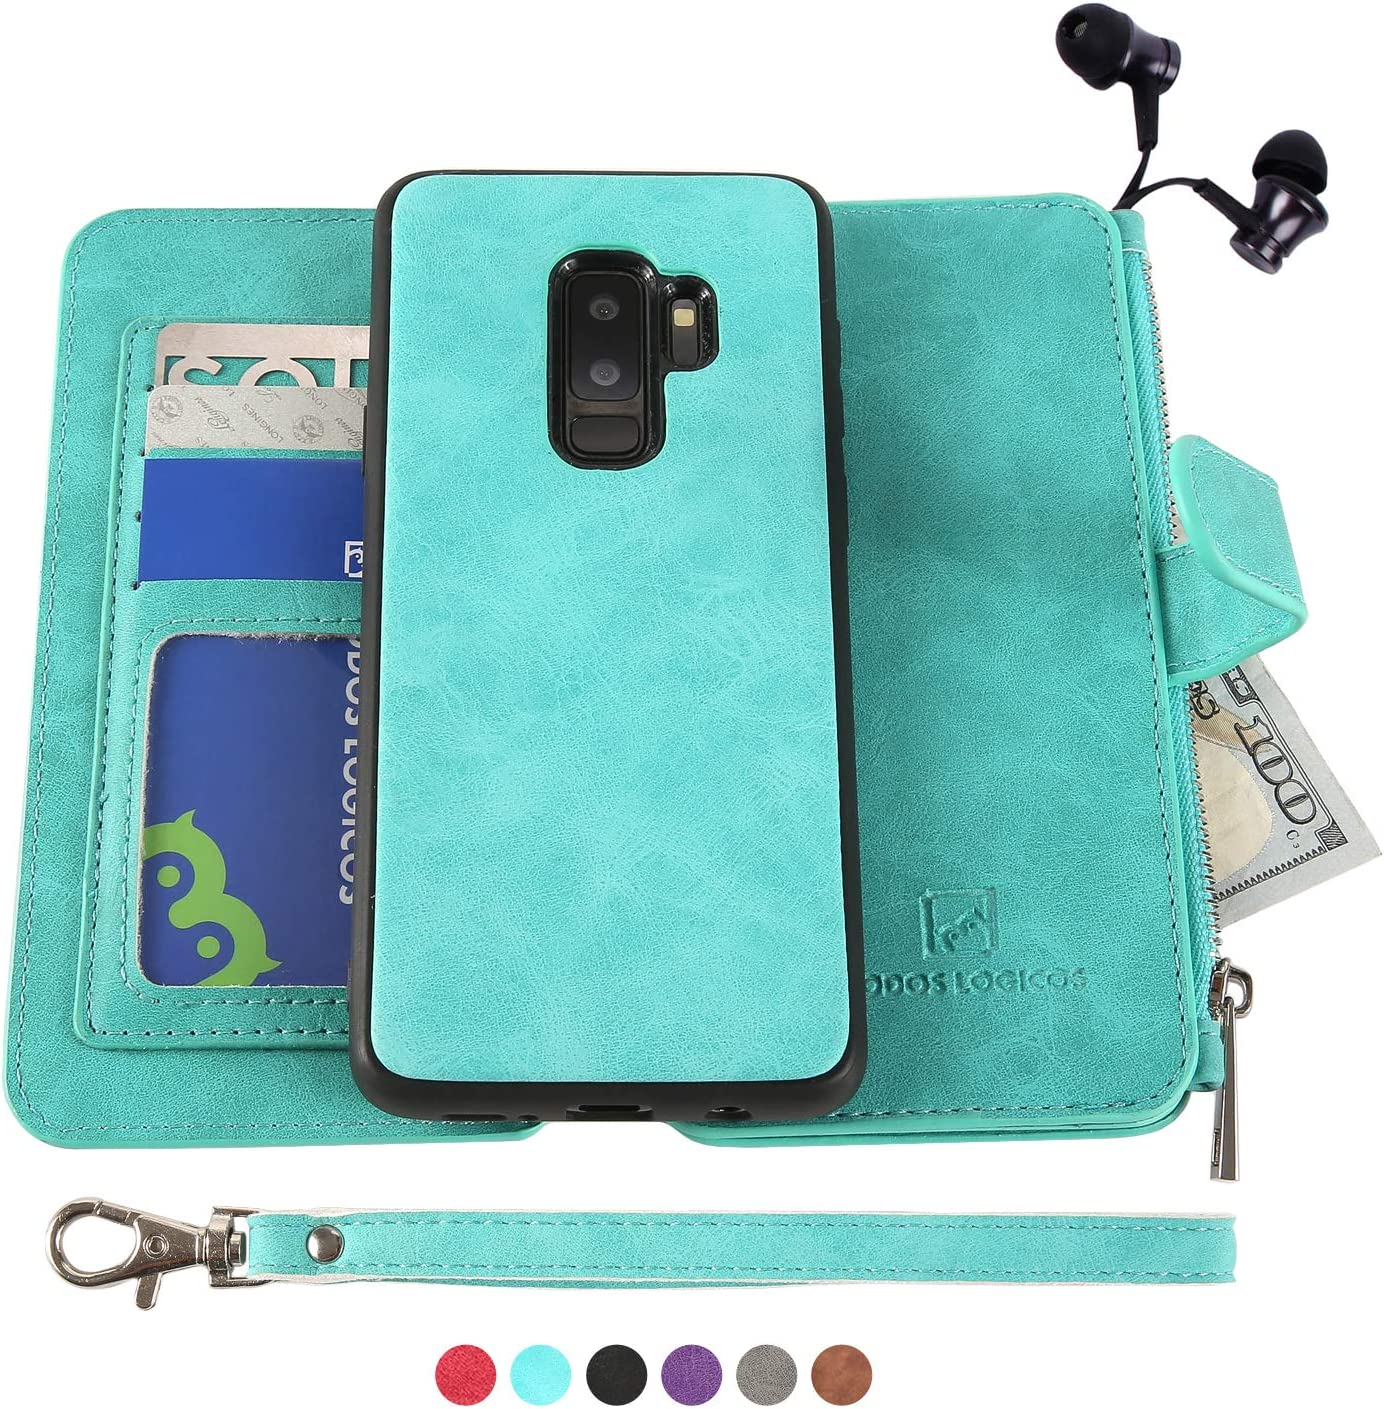 Samsung Galaxy S9 Plus Case, [Detachable Wallet Folio][2 in 1][Zipper Cash Storage][Up to 14 Card Slots 1 Photo Window] PU Leather Purse Clutch with Removable Inner Magnetic TPU Case - Teal